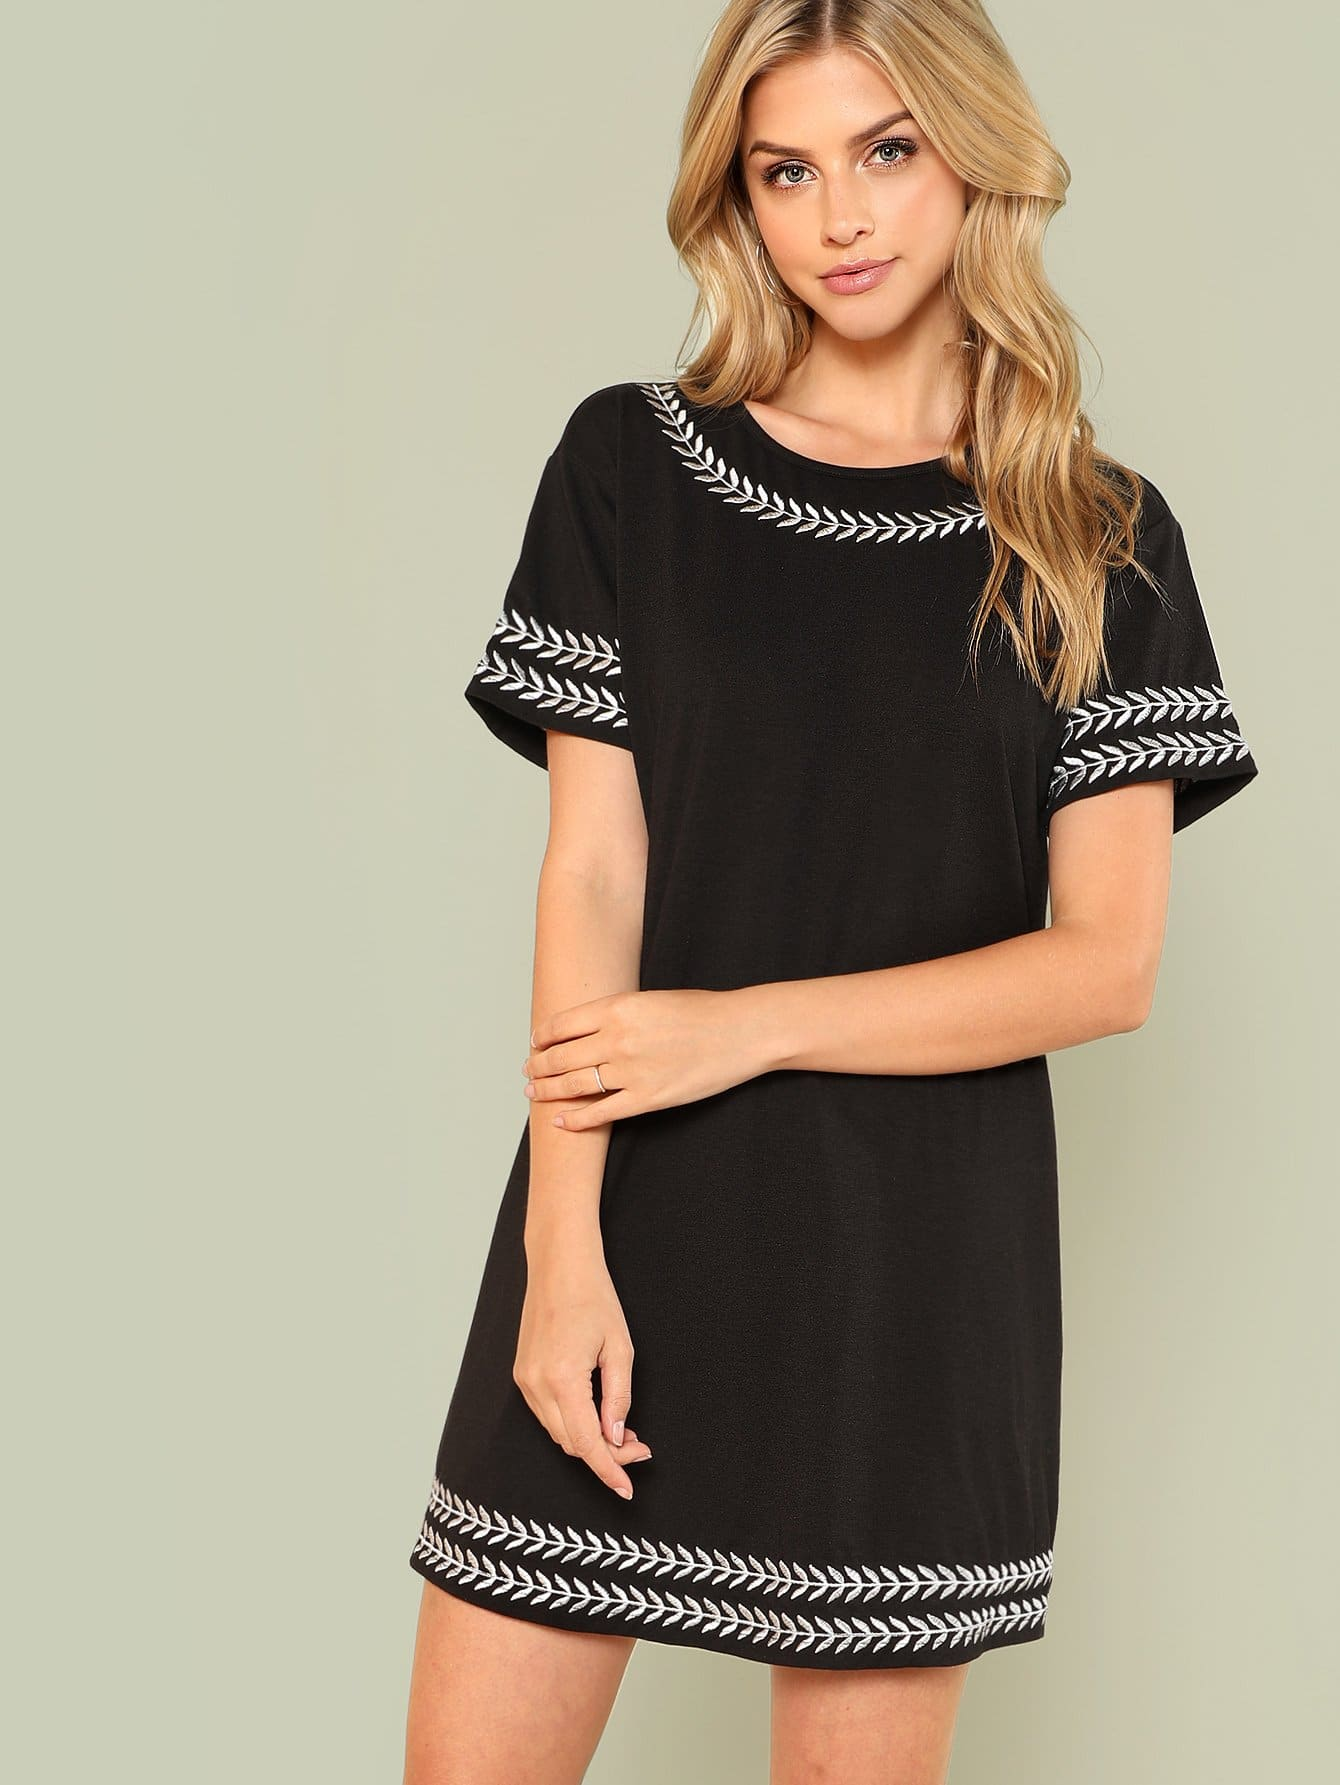 Embroidered Trim Tunic Dress embroidered sleeve denim tunic dress